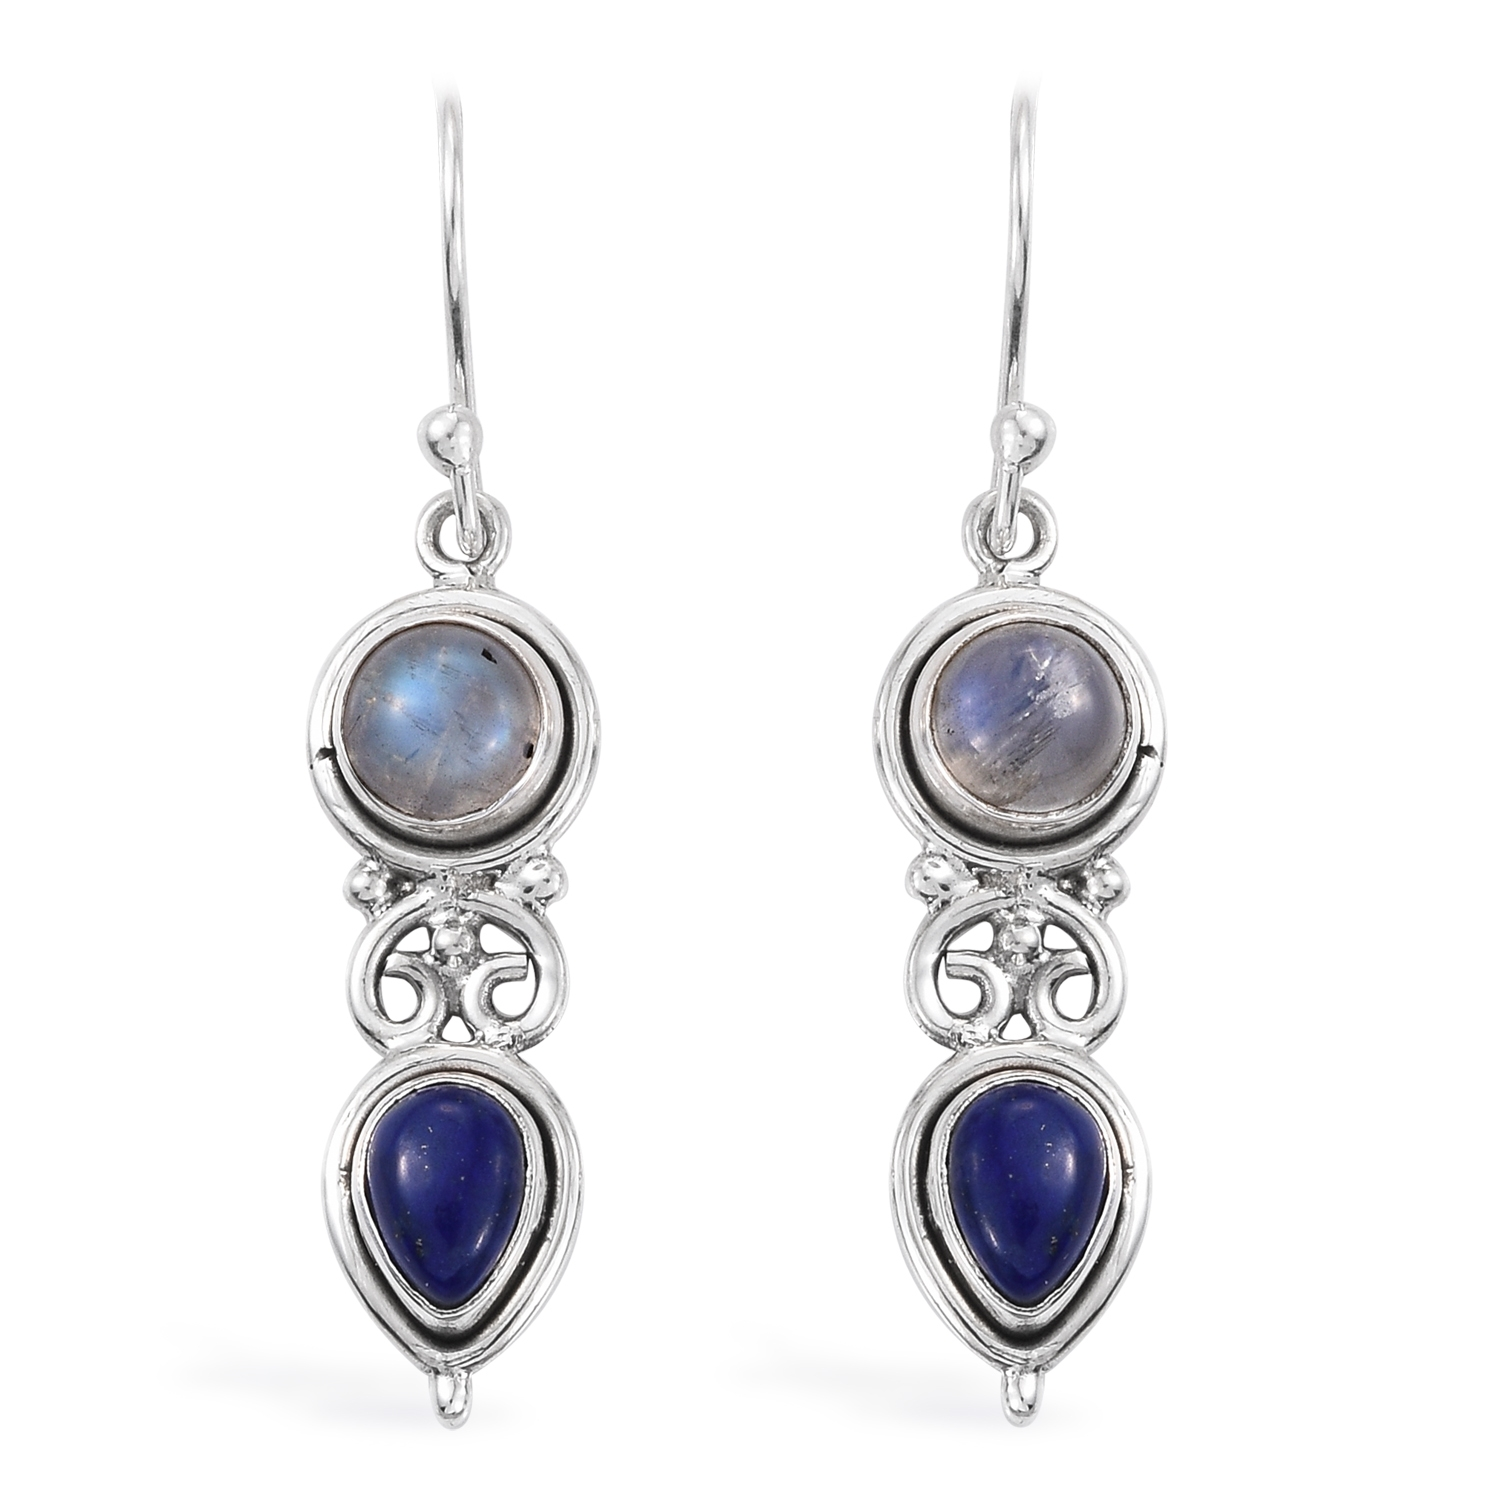 Shop for Lapis Lazuli Earrings.